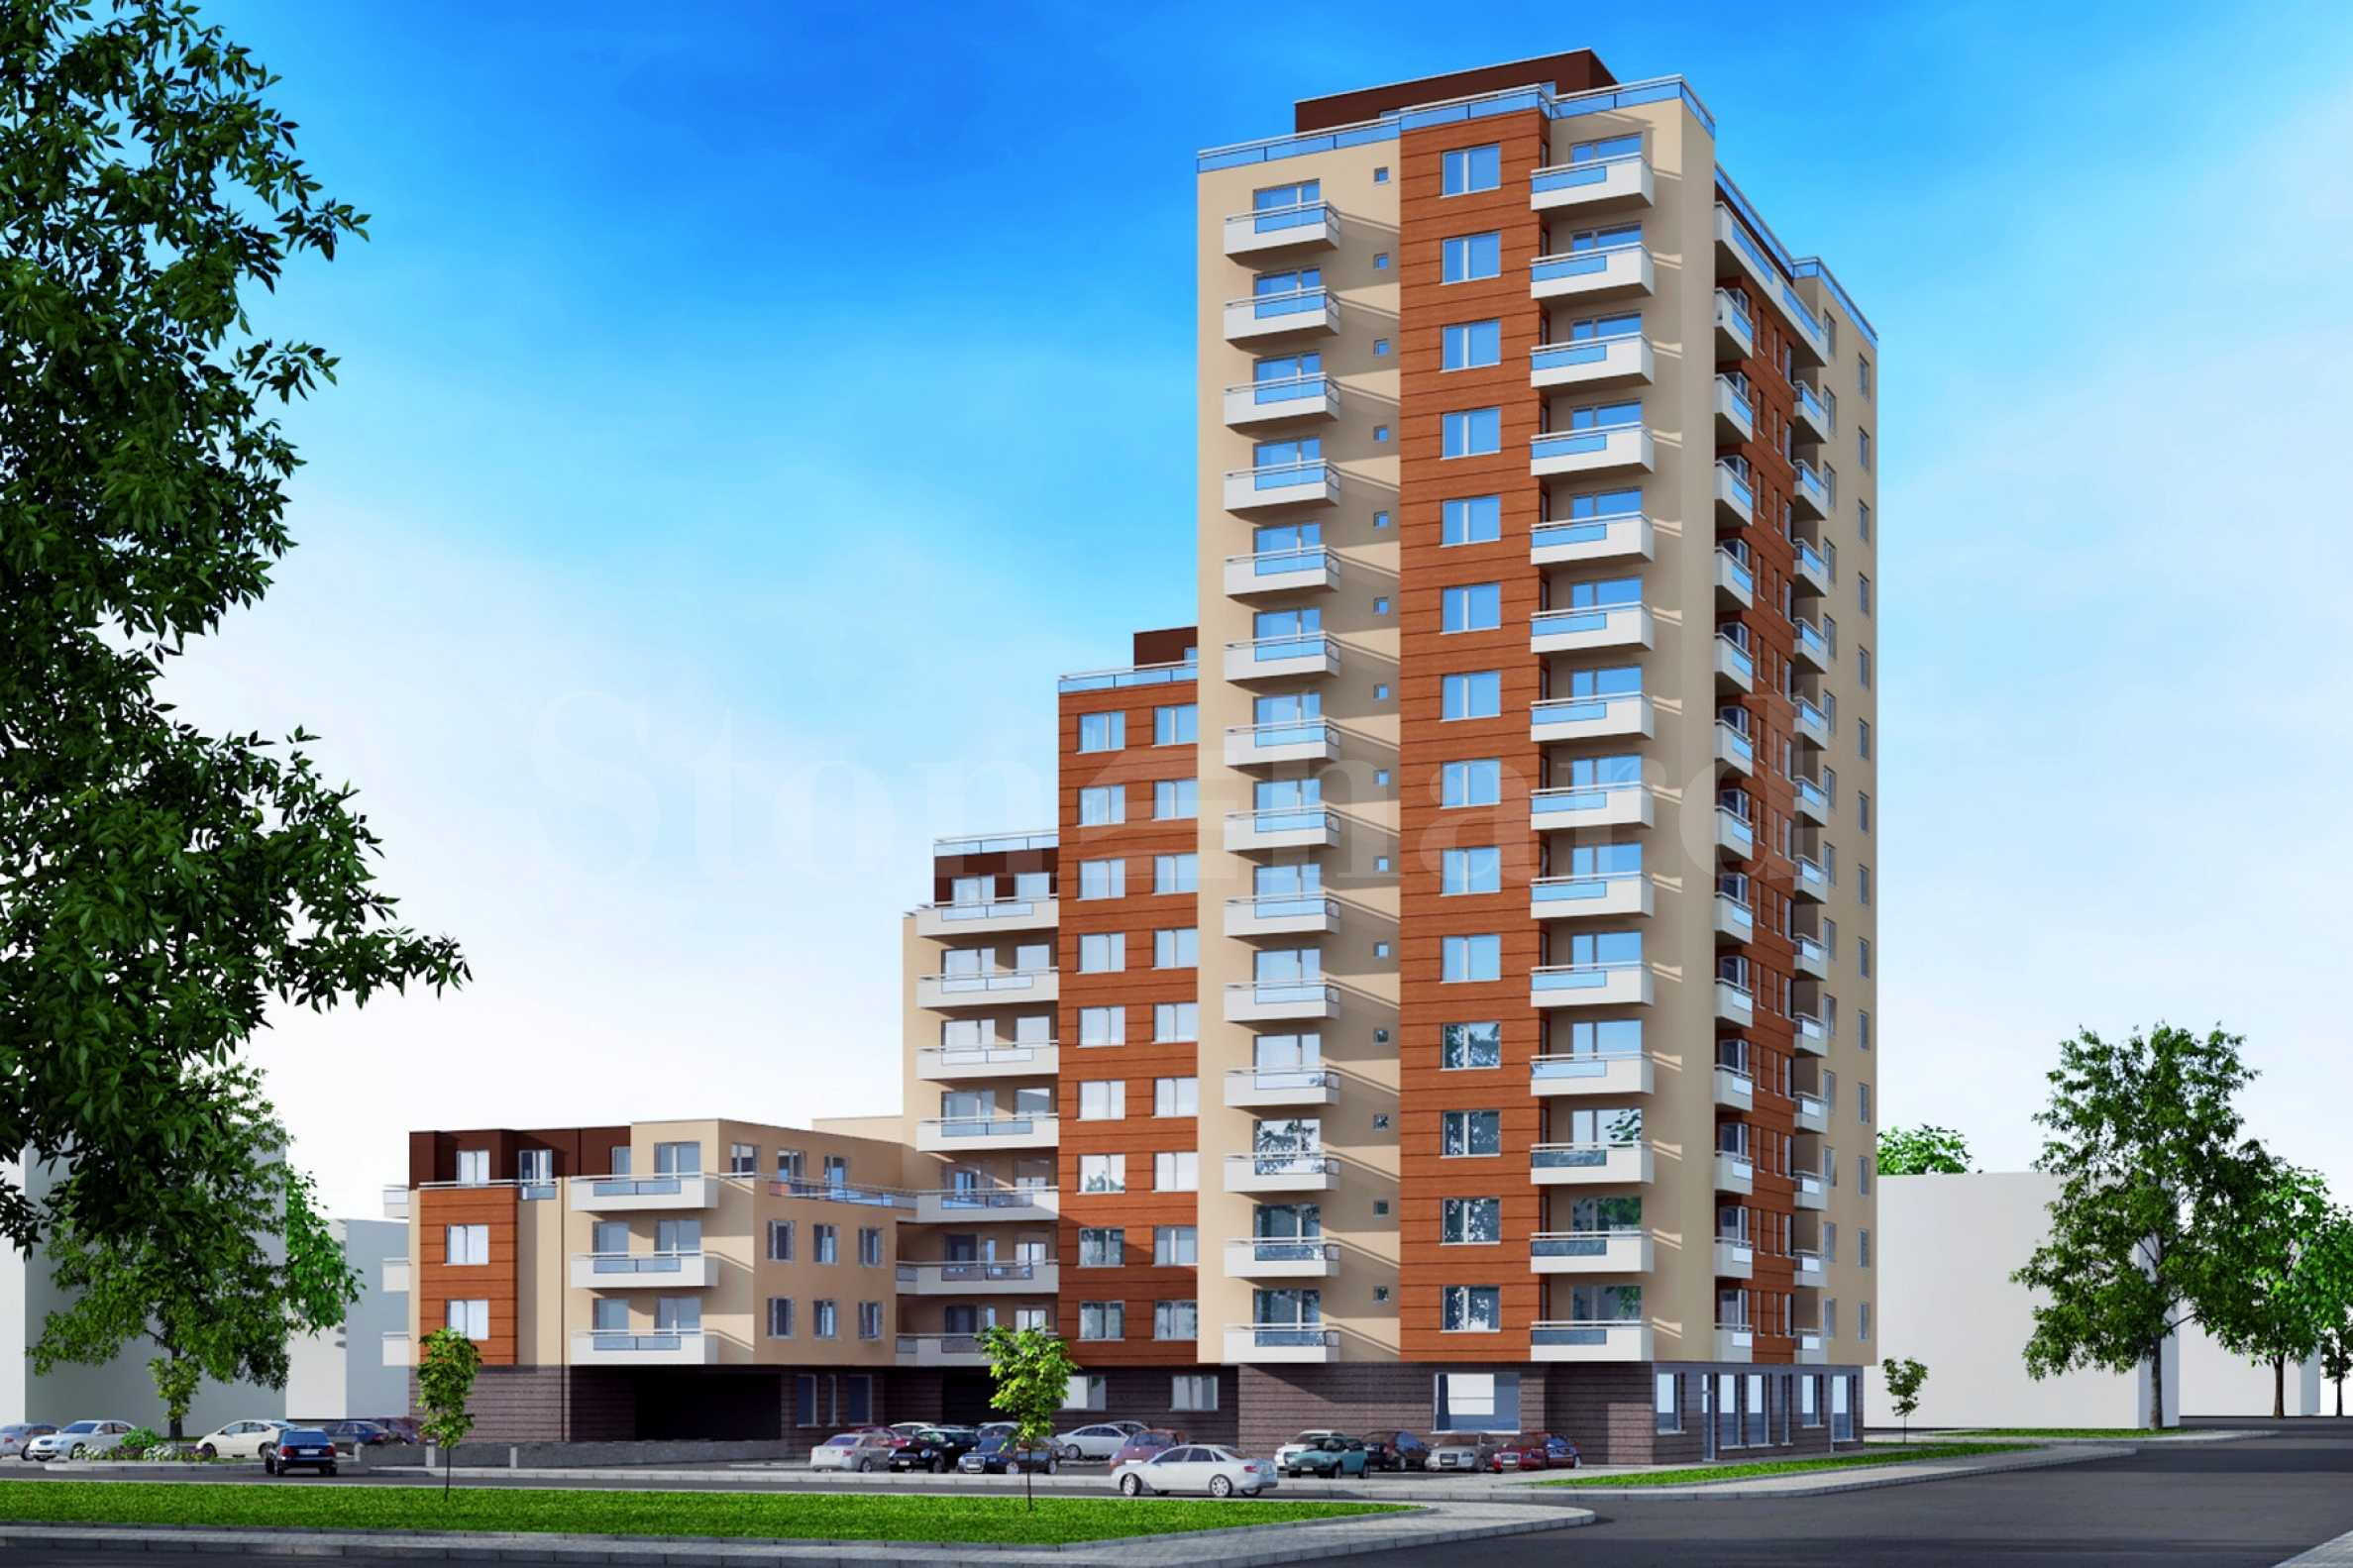 New building with a choice of apartments at attractive prices in